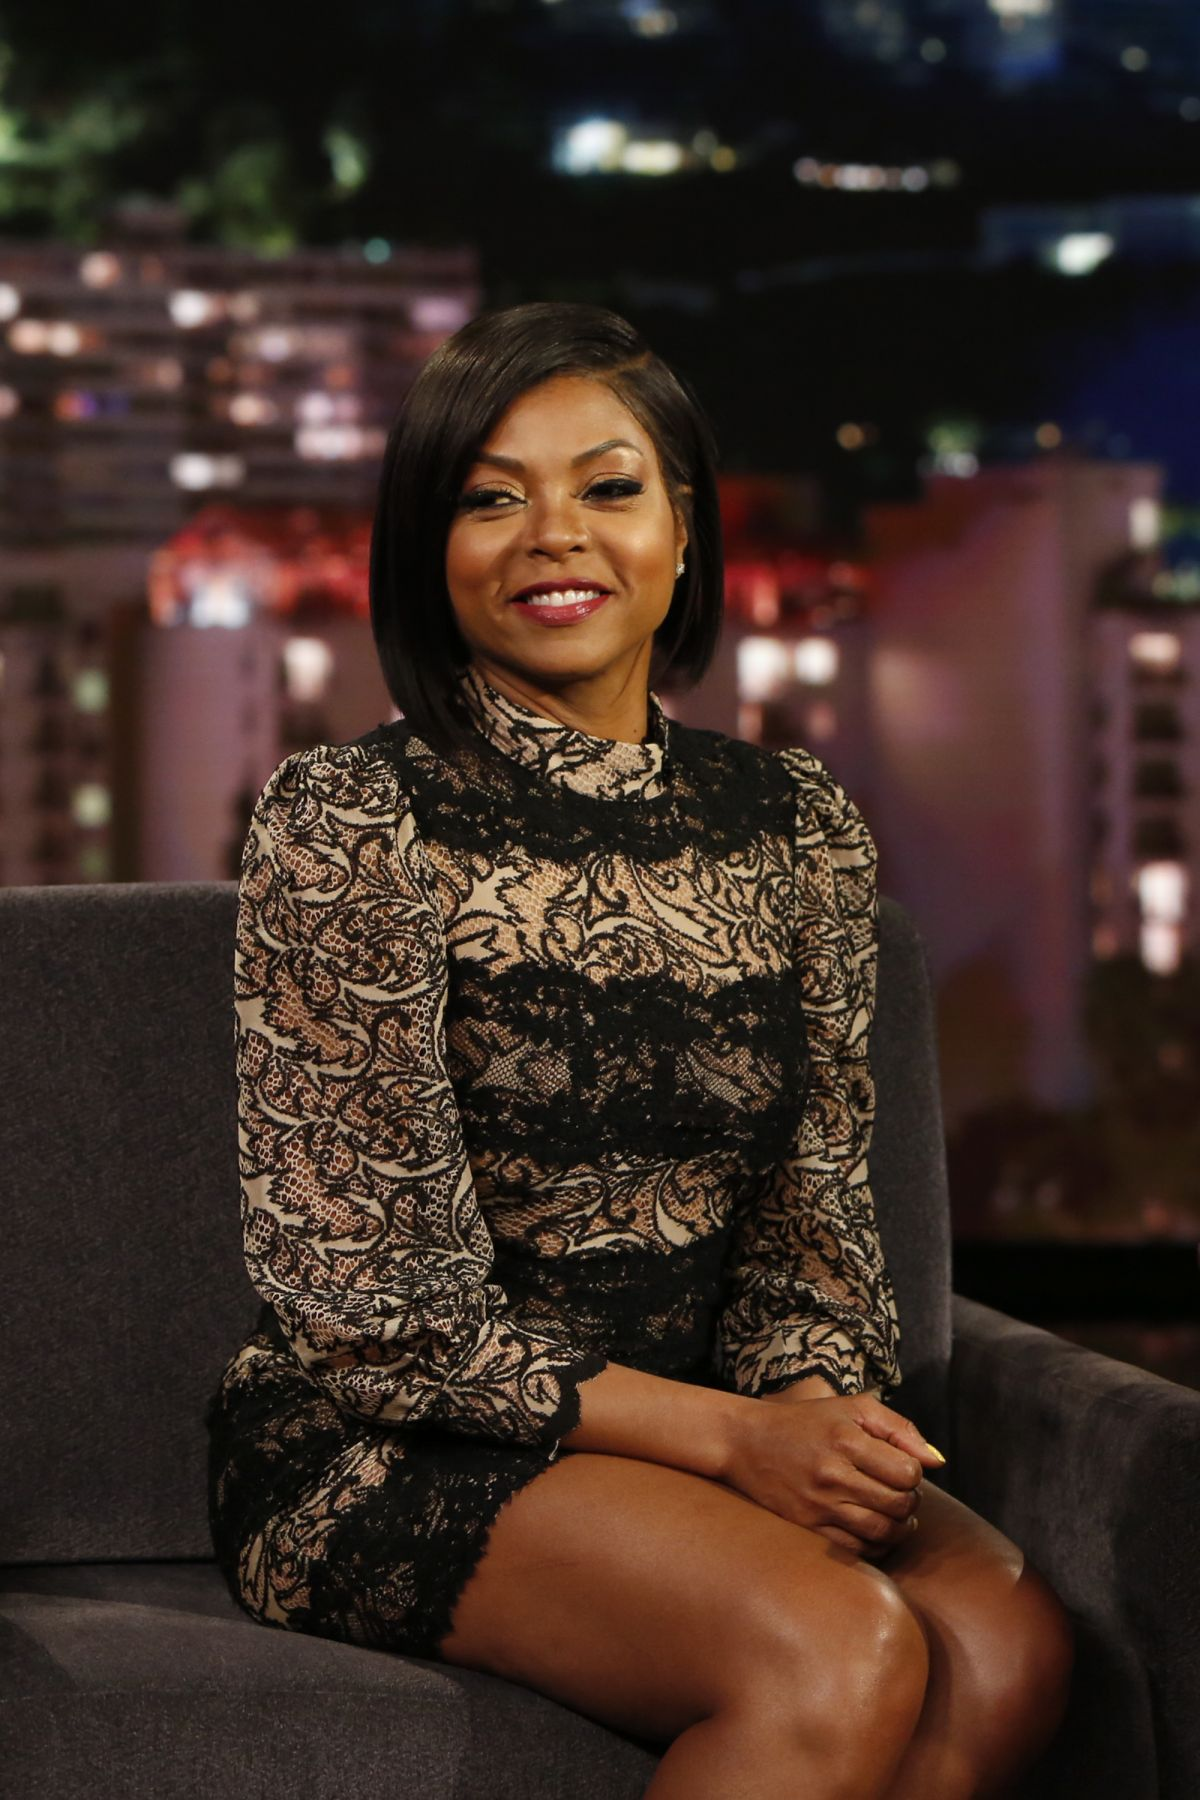 TARAJI P. HENSON at Jimmy Kimmel Live in HOllywood 01/03/2017